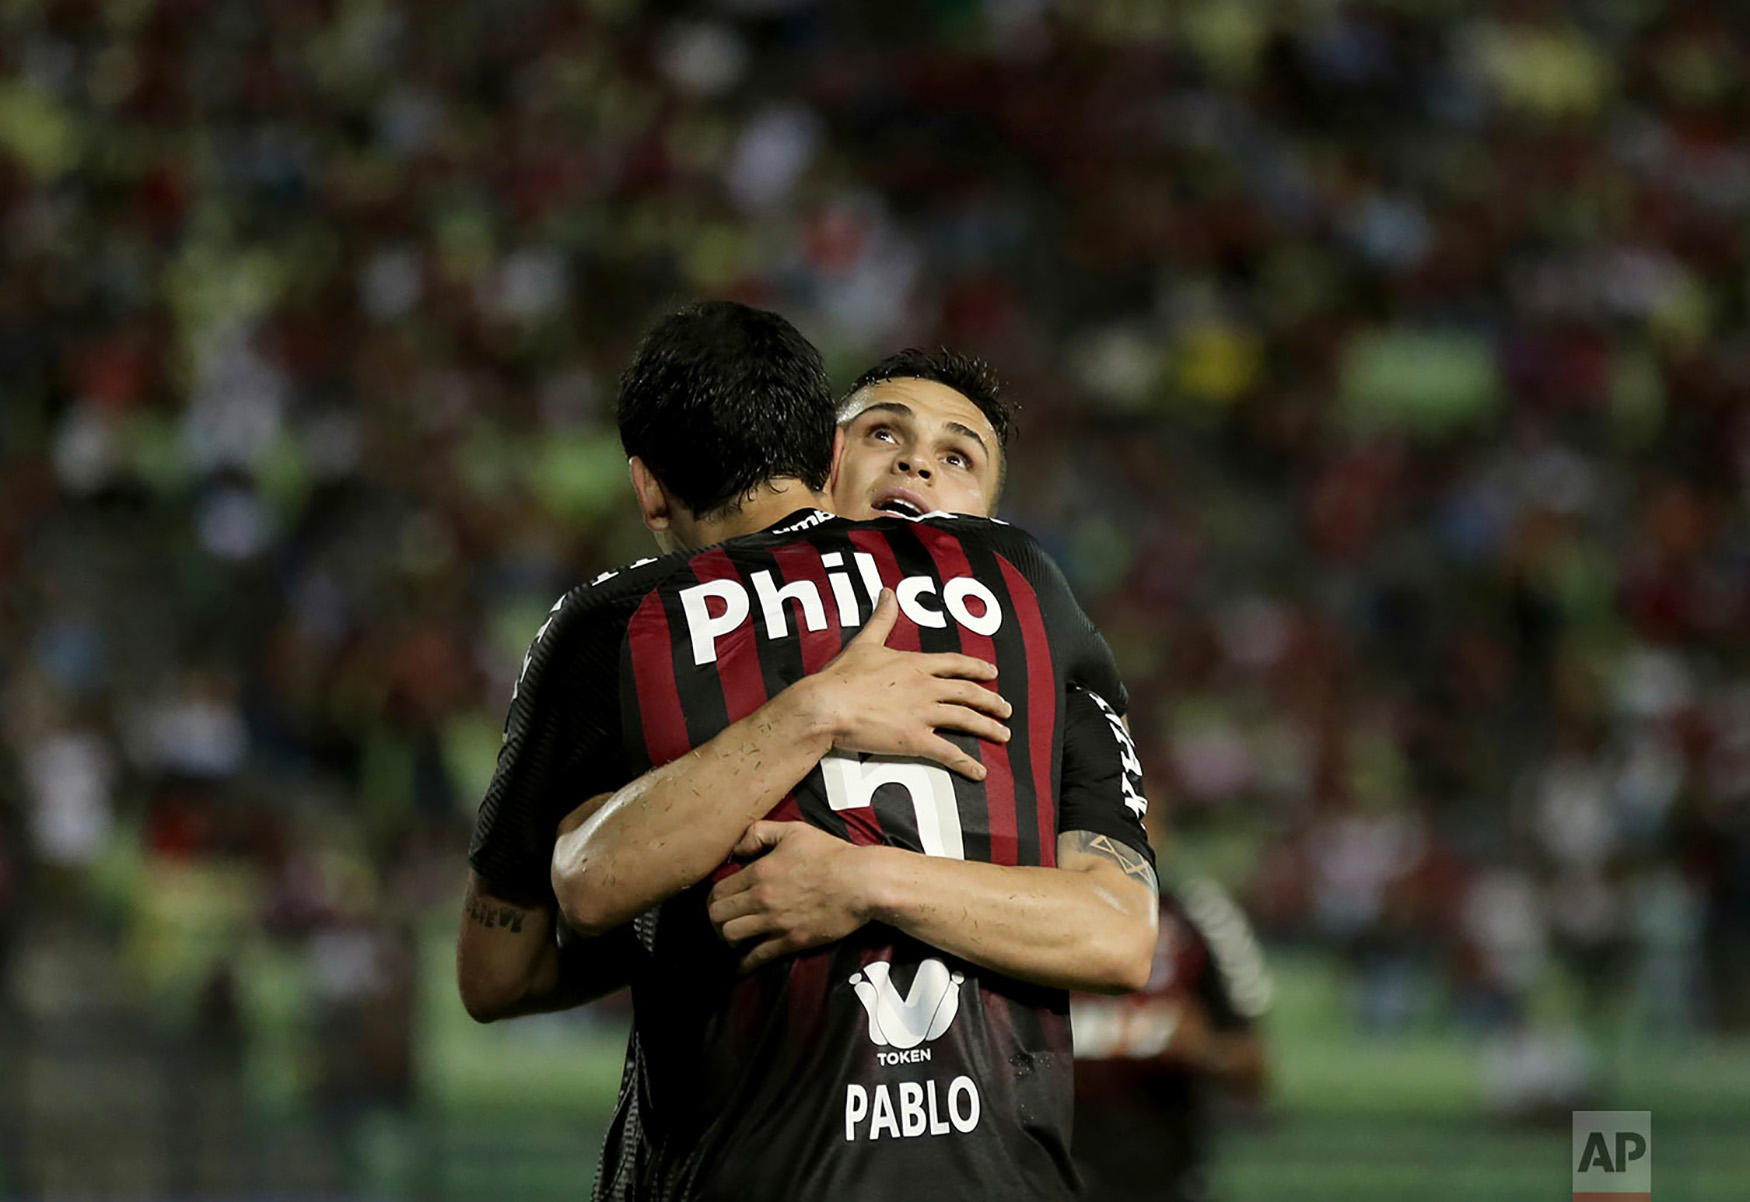 Raphael Veiga of Brazil's Atletico Paranaense celebrates with his teammate Pablo, after scoring his second goal against Venezuela's Caracas FC during their Copa Sudamericana soccer match in Caracas, Venezuela, Sept. 19, 2018.(AP Photo/Fernando Llano)